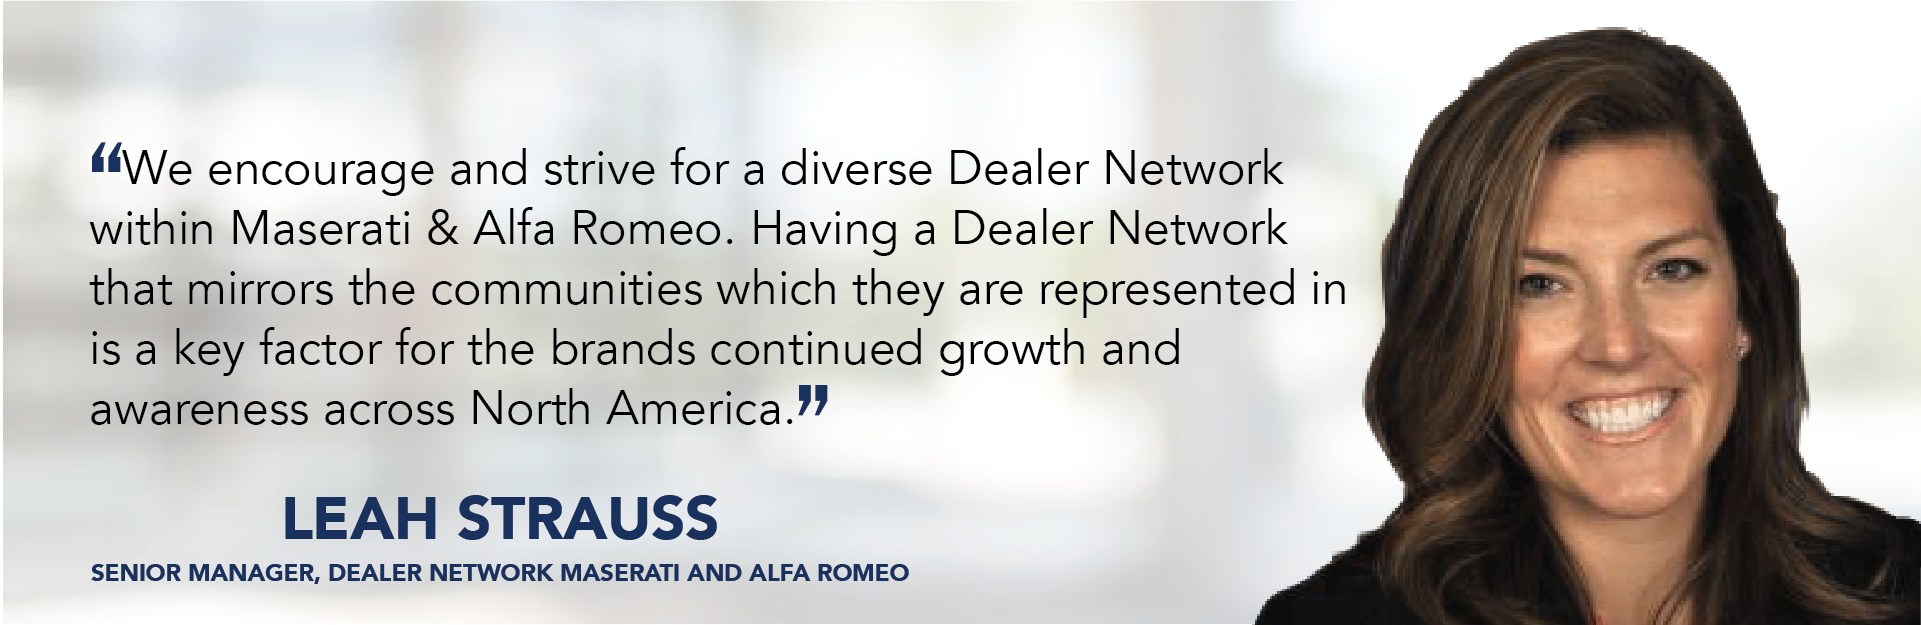 We encourage and strive for a diverse Dealer Network within Maserati & Alfa Romeo. Having a Dealer Network that mirrors the communities which they are represented in is a key factor for the brands continued growth and awareness across North America. - Leah Strauss